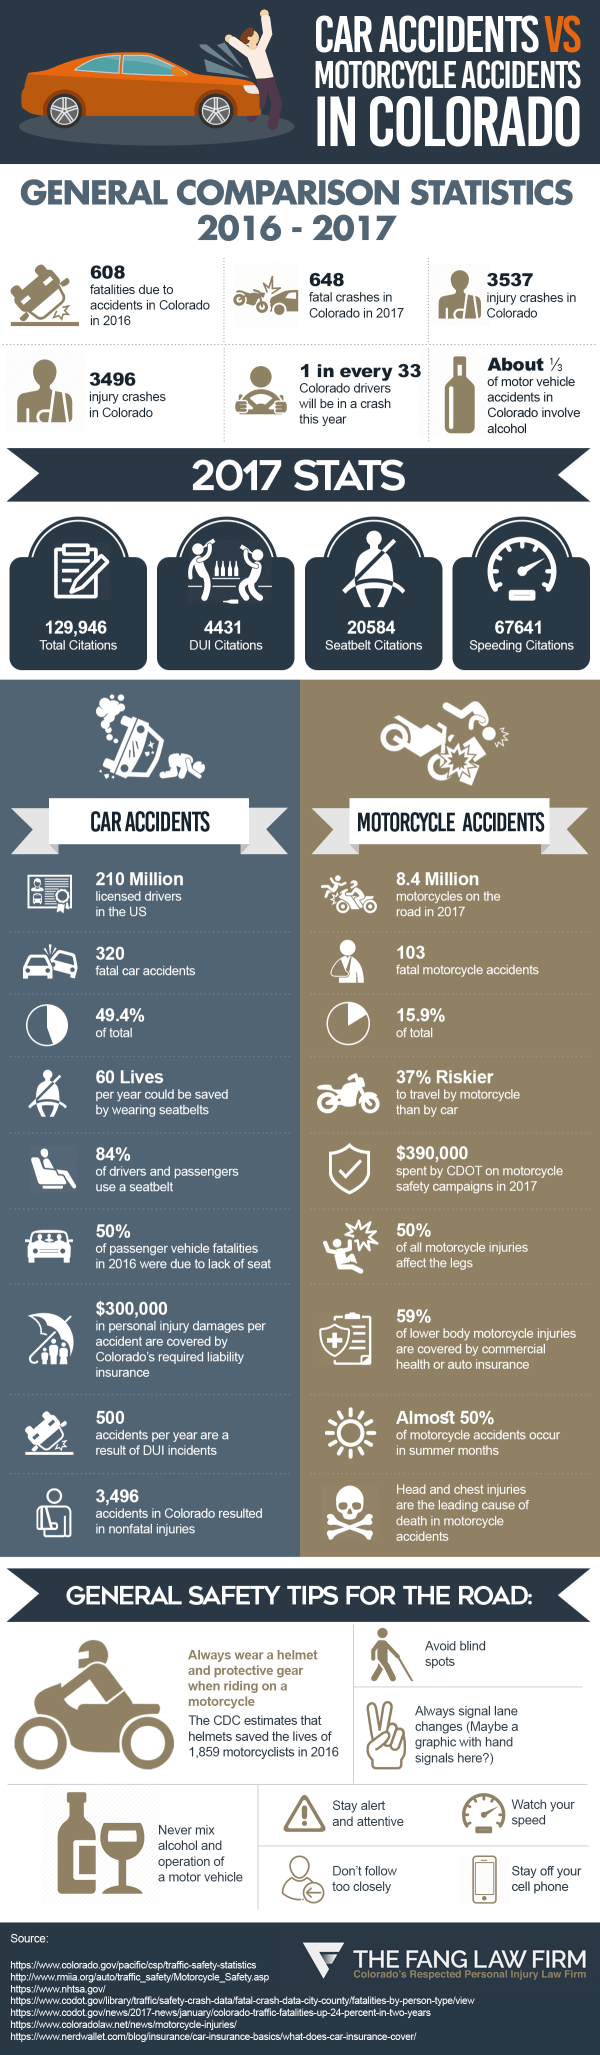 car-accidents-vs-motorcycle-accidents-denver-colorado